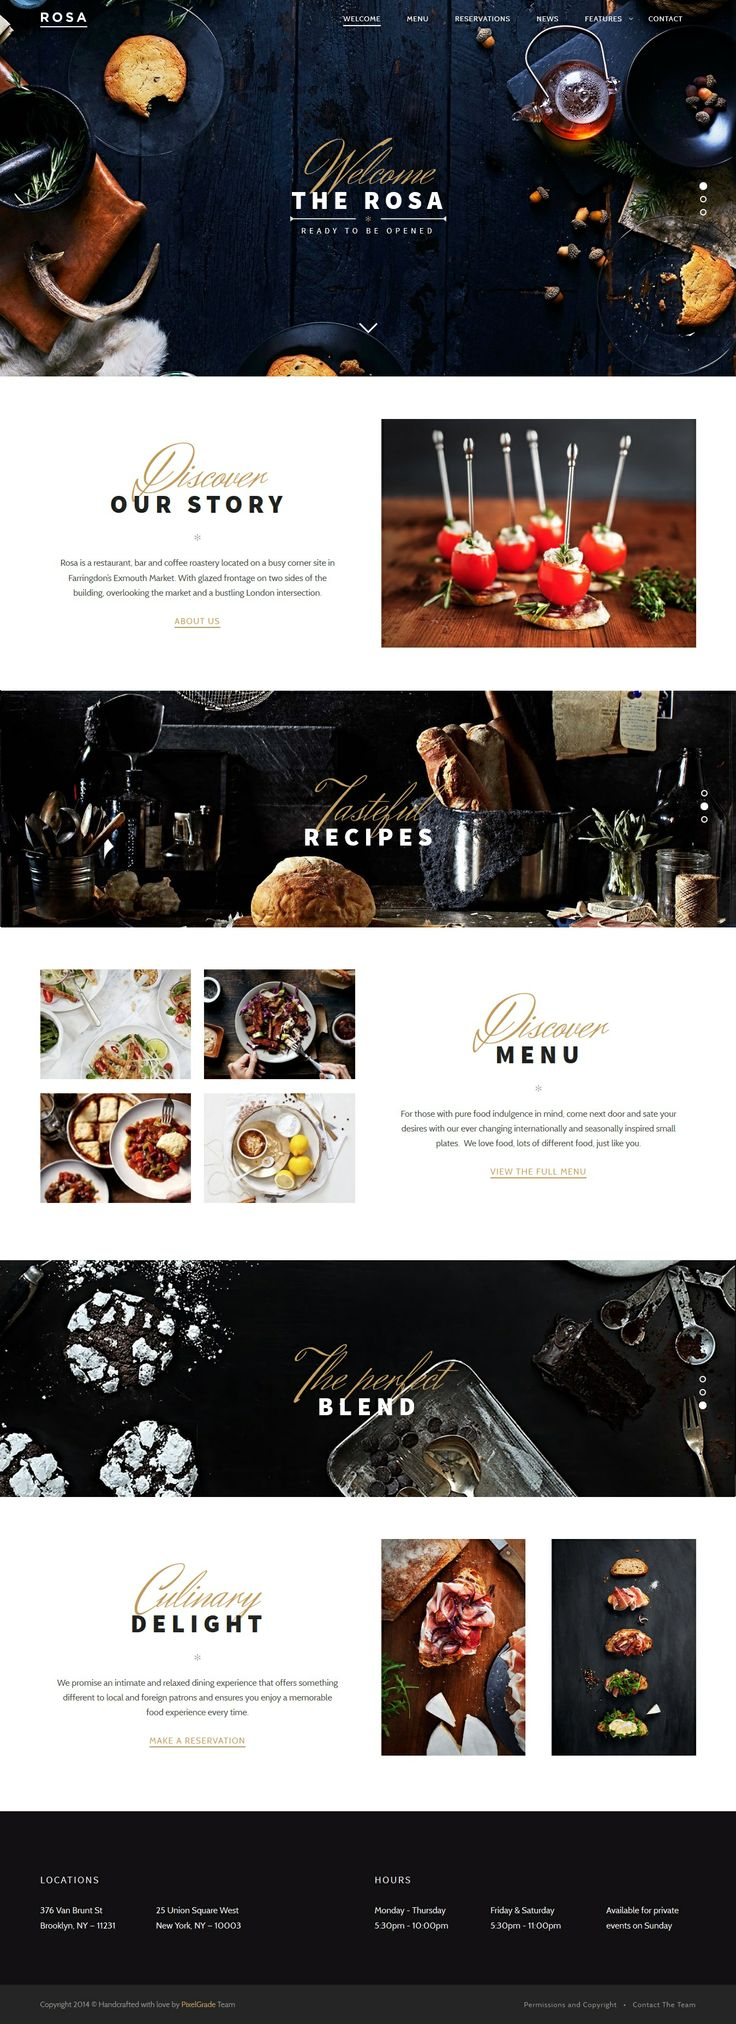 ROSA - An Exquisite Restaurant WordPress Theme #web #design